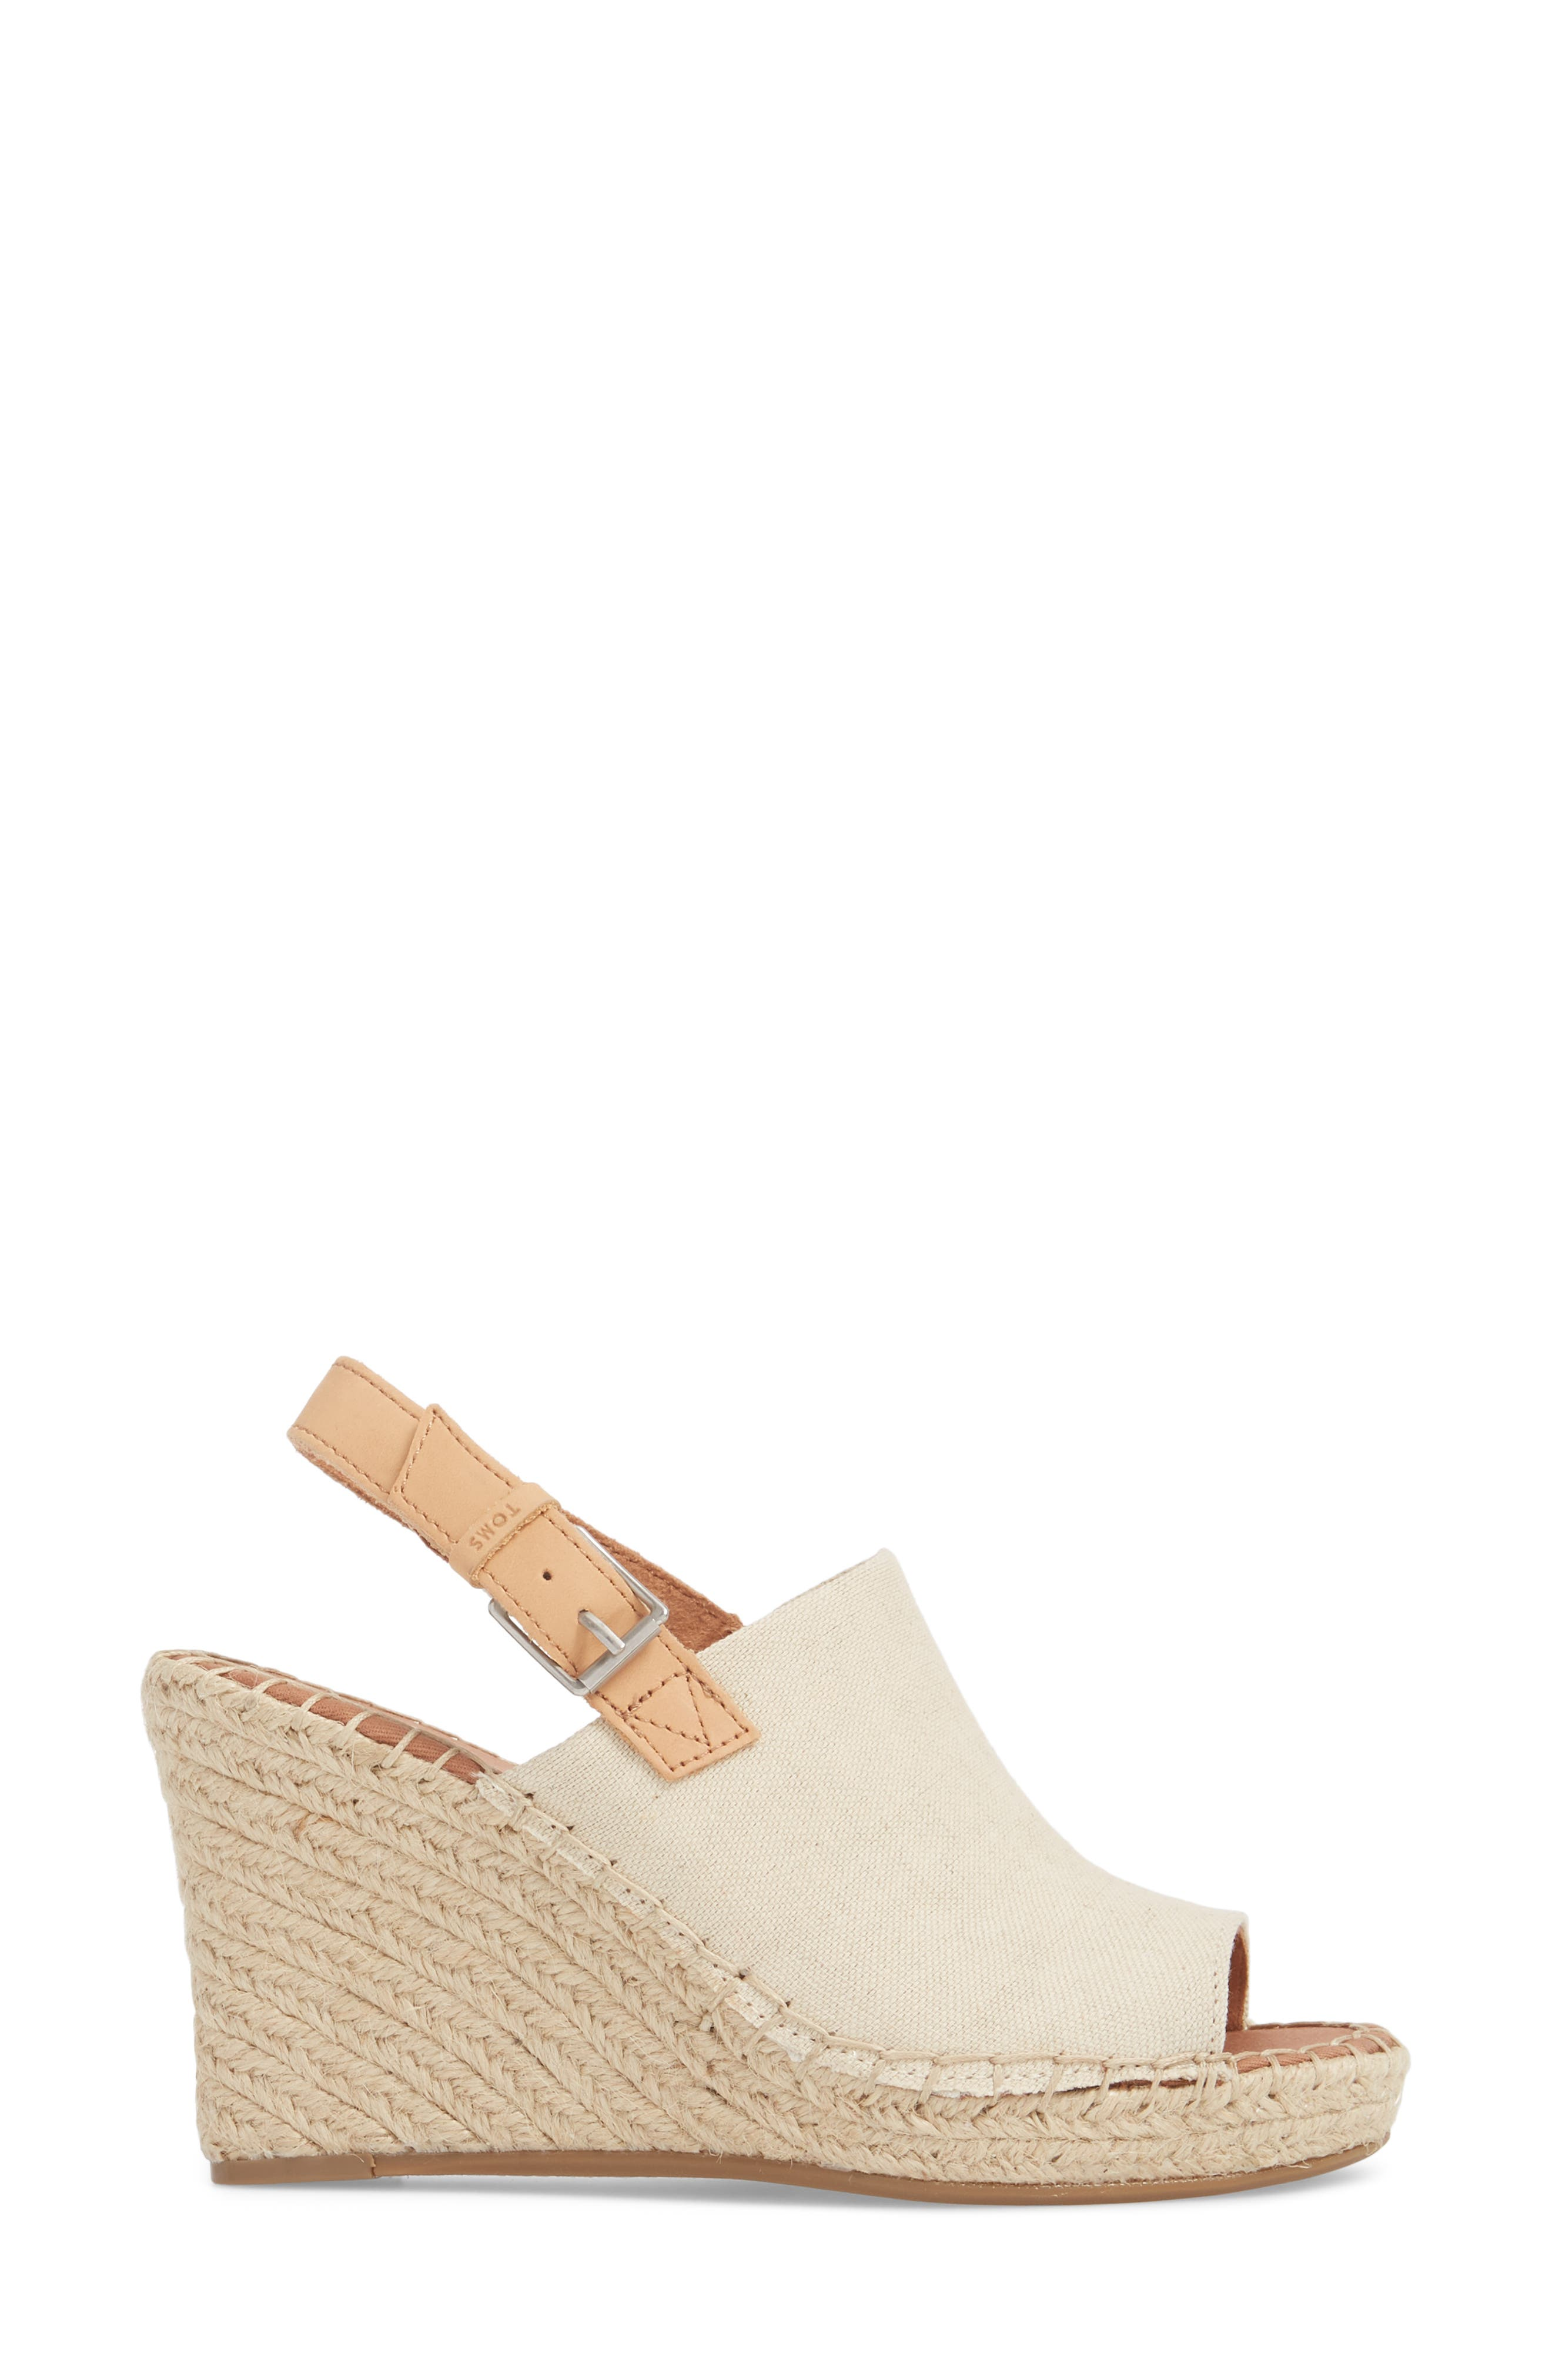 Monica Slingback Wedge,                             Alternate thumbnail 3, color,                             NATURAL HEMP/ LEATHER